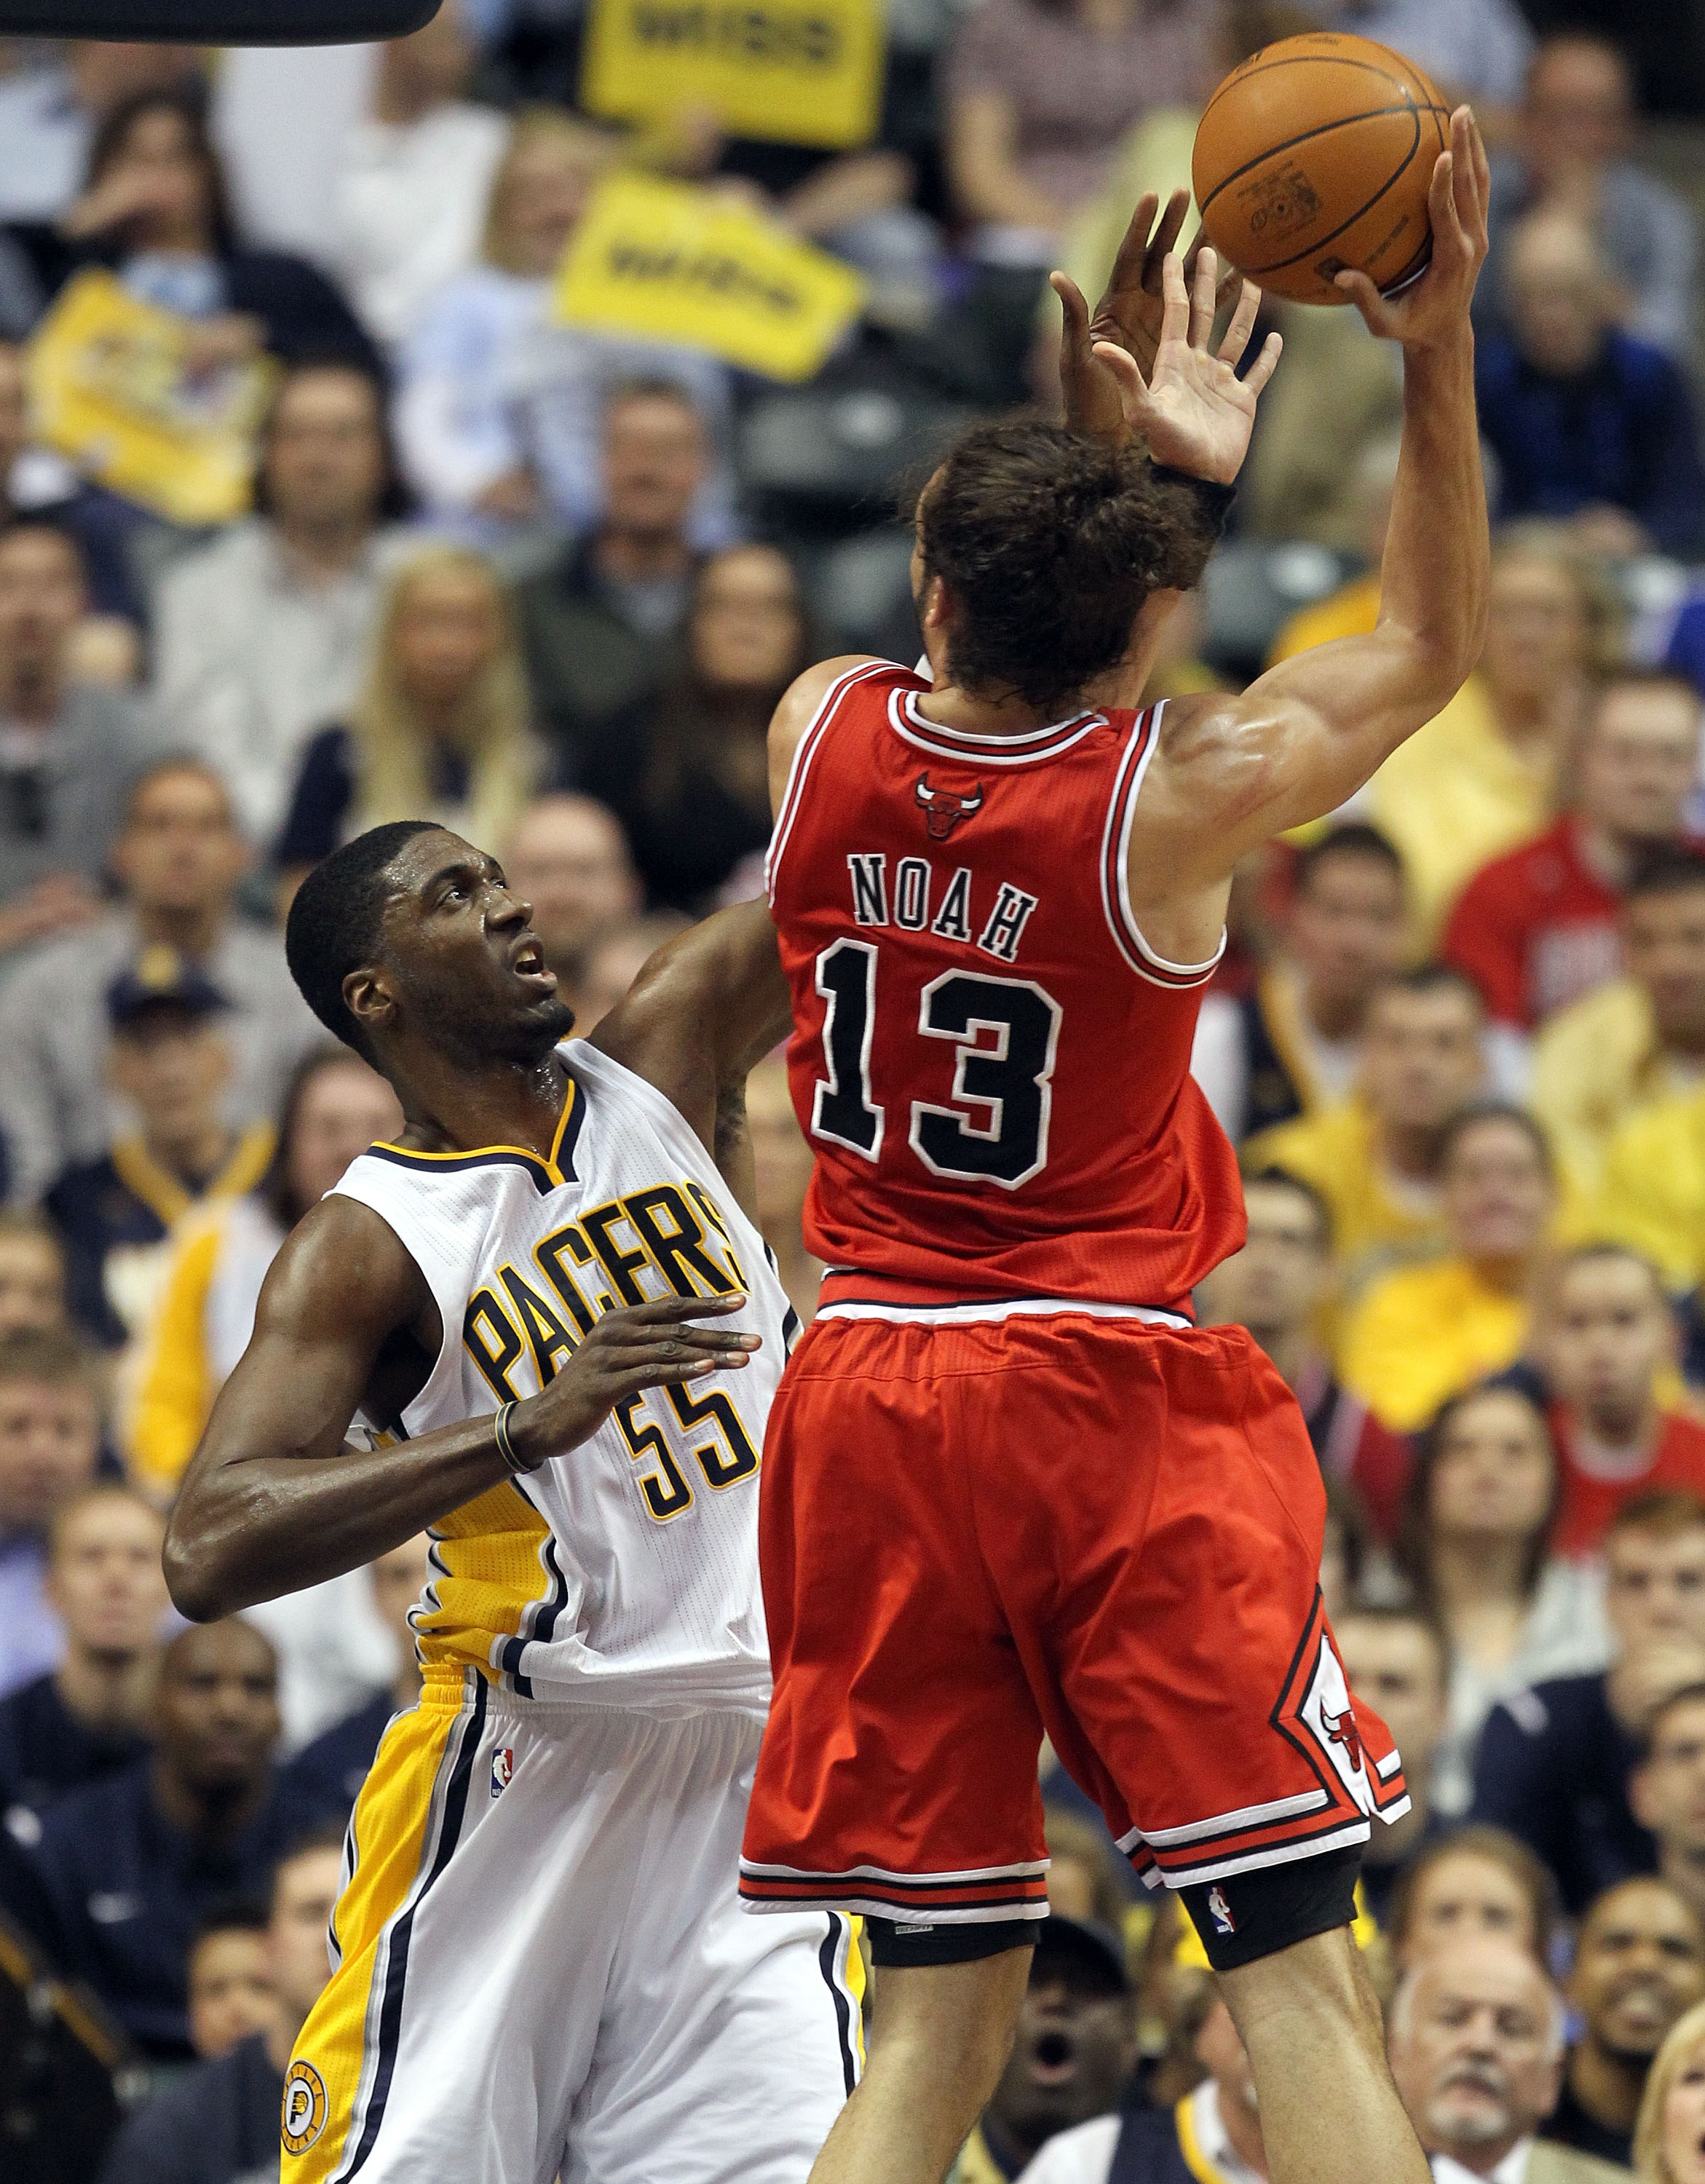 INDIANAPOLIS, IN - APRIL 21:  Roy Hibbert #55 of the Indiana Pacers defends the shot by Joakim Noah #13 of the Chicago Bulls in Game three of the Eastern Conference Quarterfinals in the 2011 NBA Playoffs on April 21, 2011  at Conseco Fieldhouse in Indiana